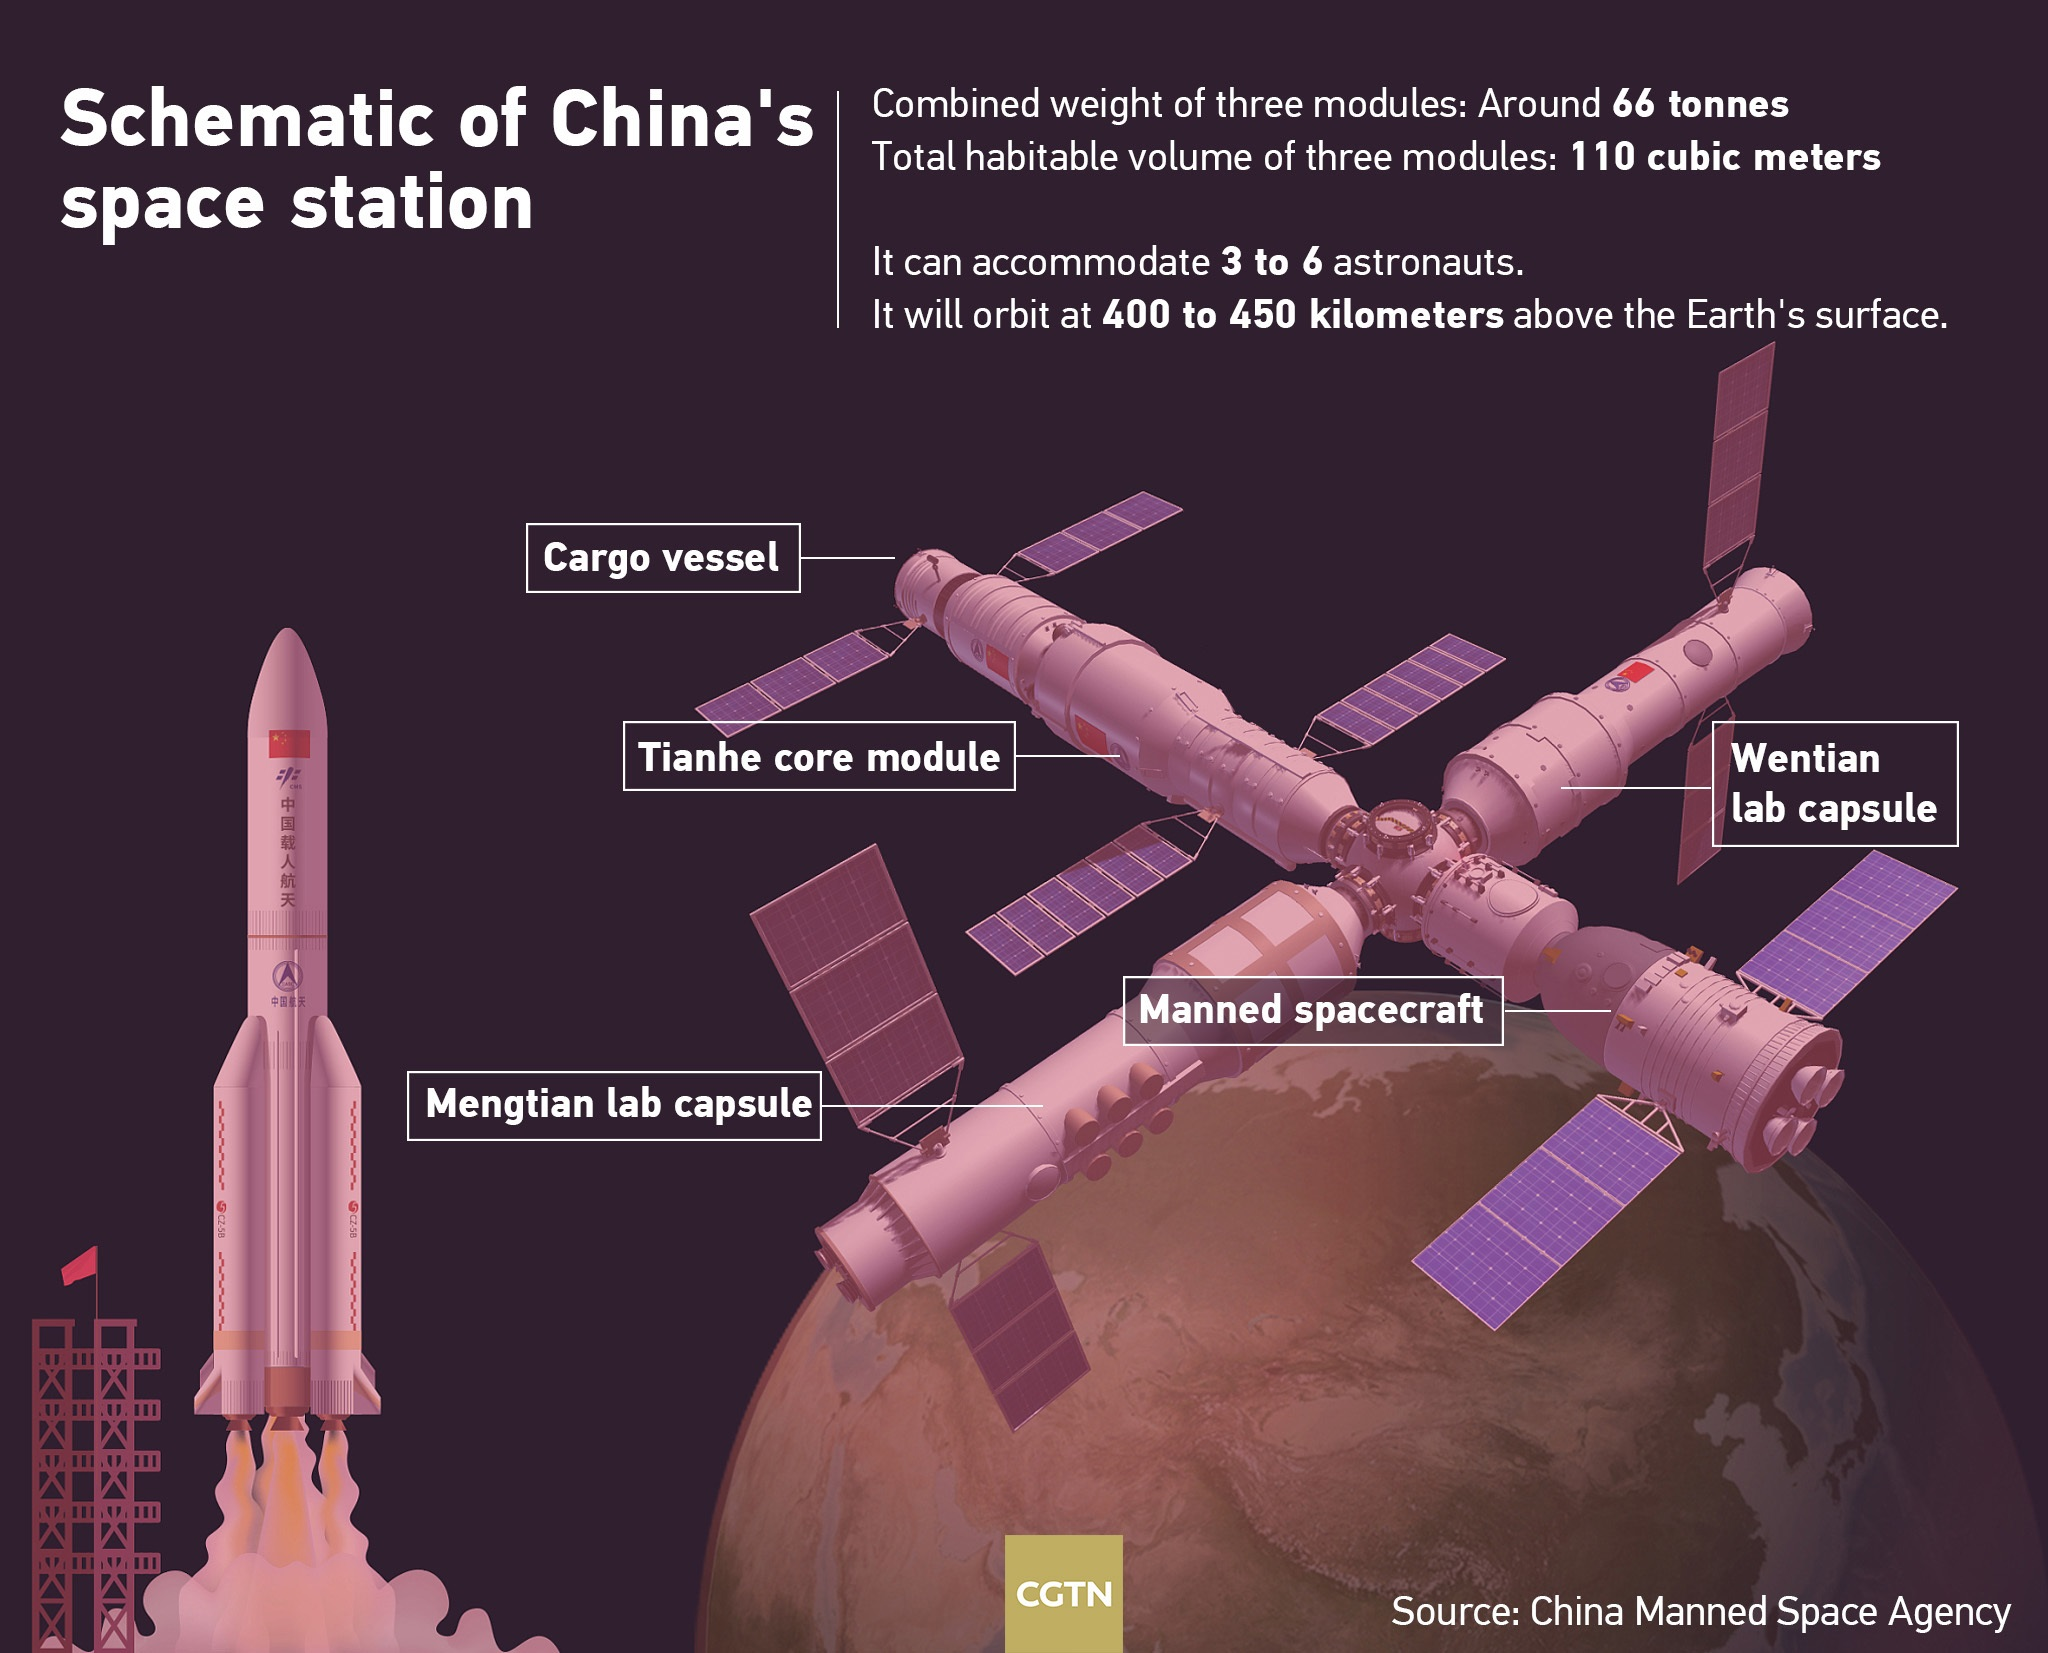 - e95aef411e574af5b62fdd1d27ab909d - A month in China Space Station: What's been done so far?